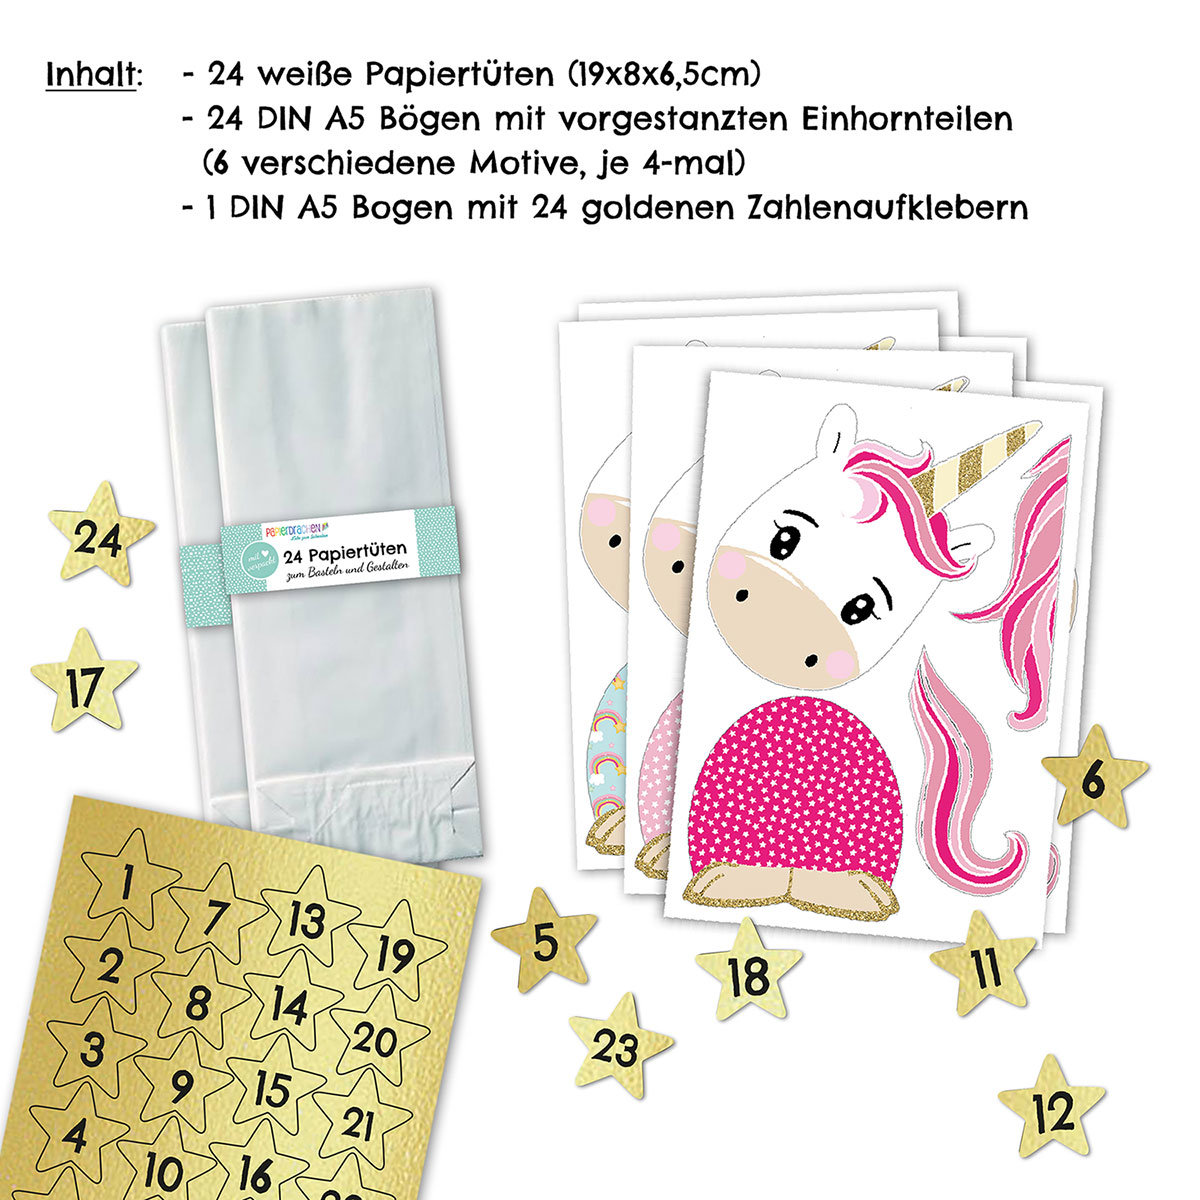 adventskalender einhorn vorgestanzter motivkalender papierdrachen. Black Bedroom Furniture Sets. Home Design Ideas